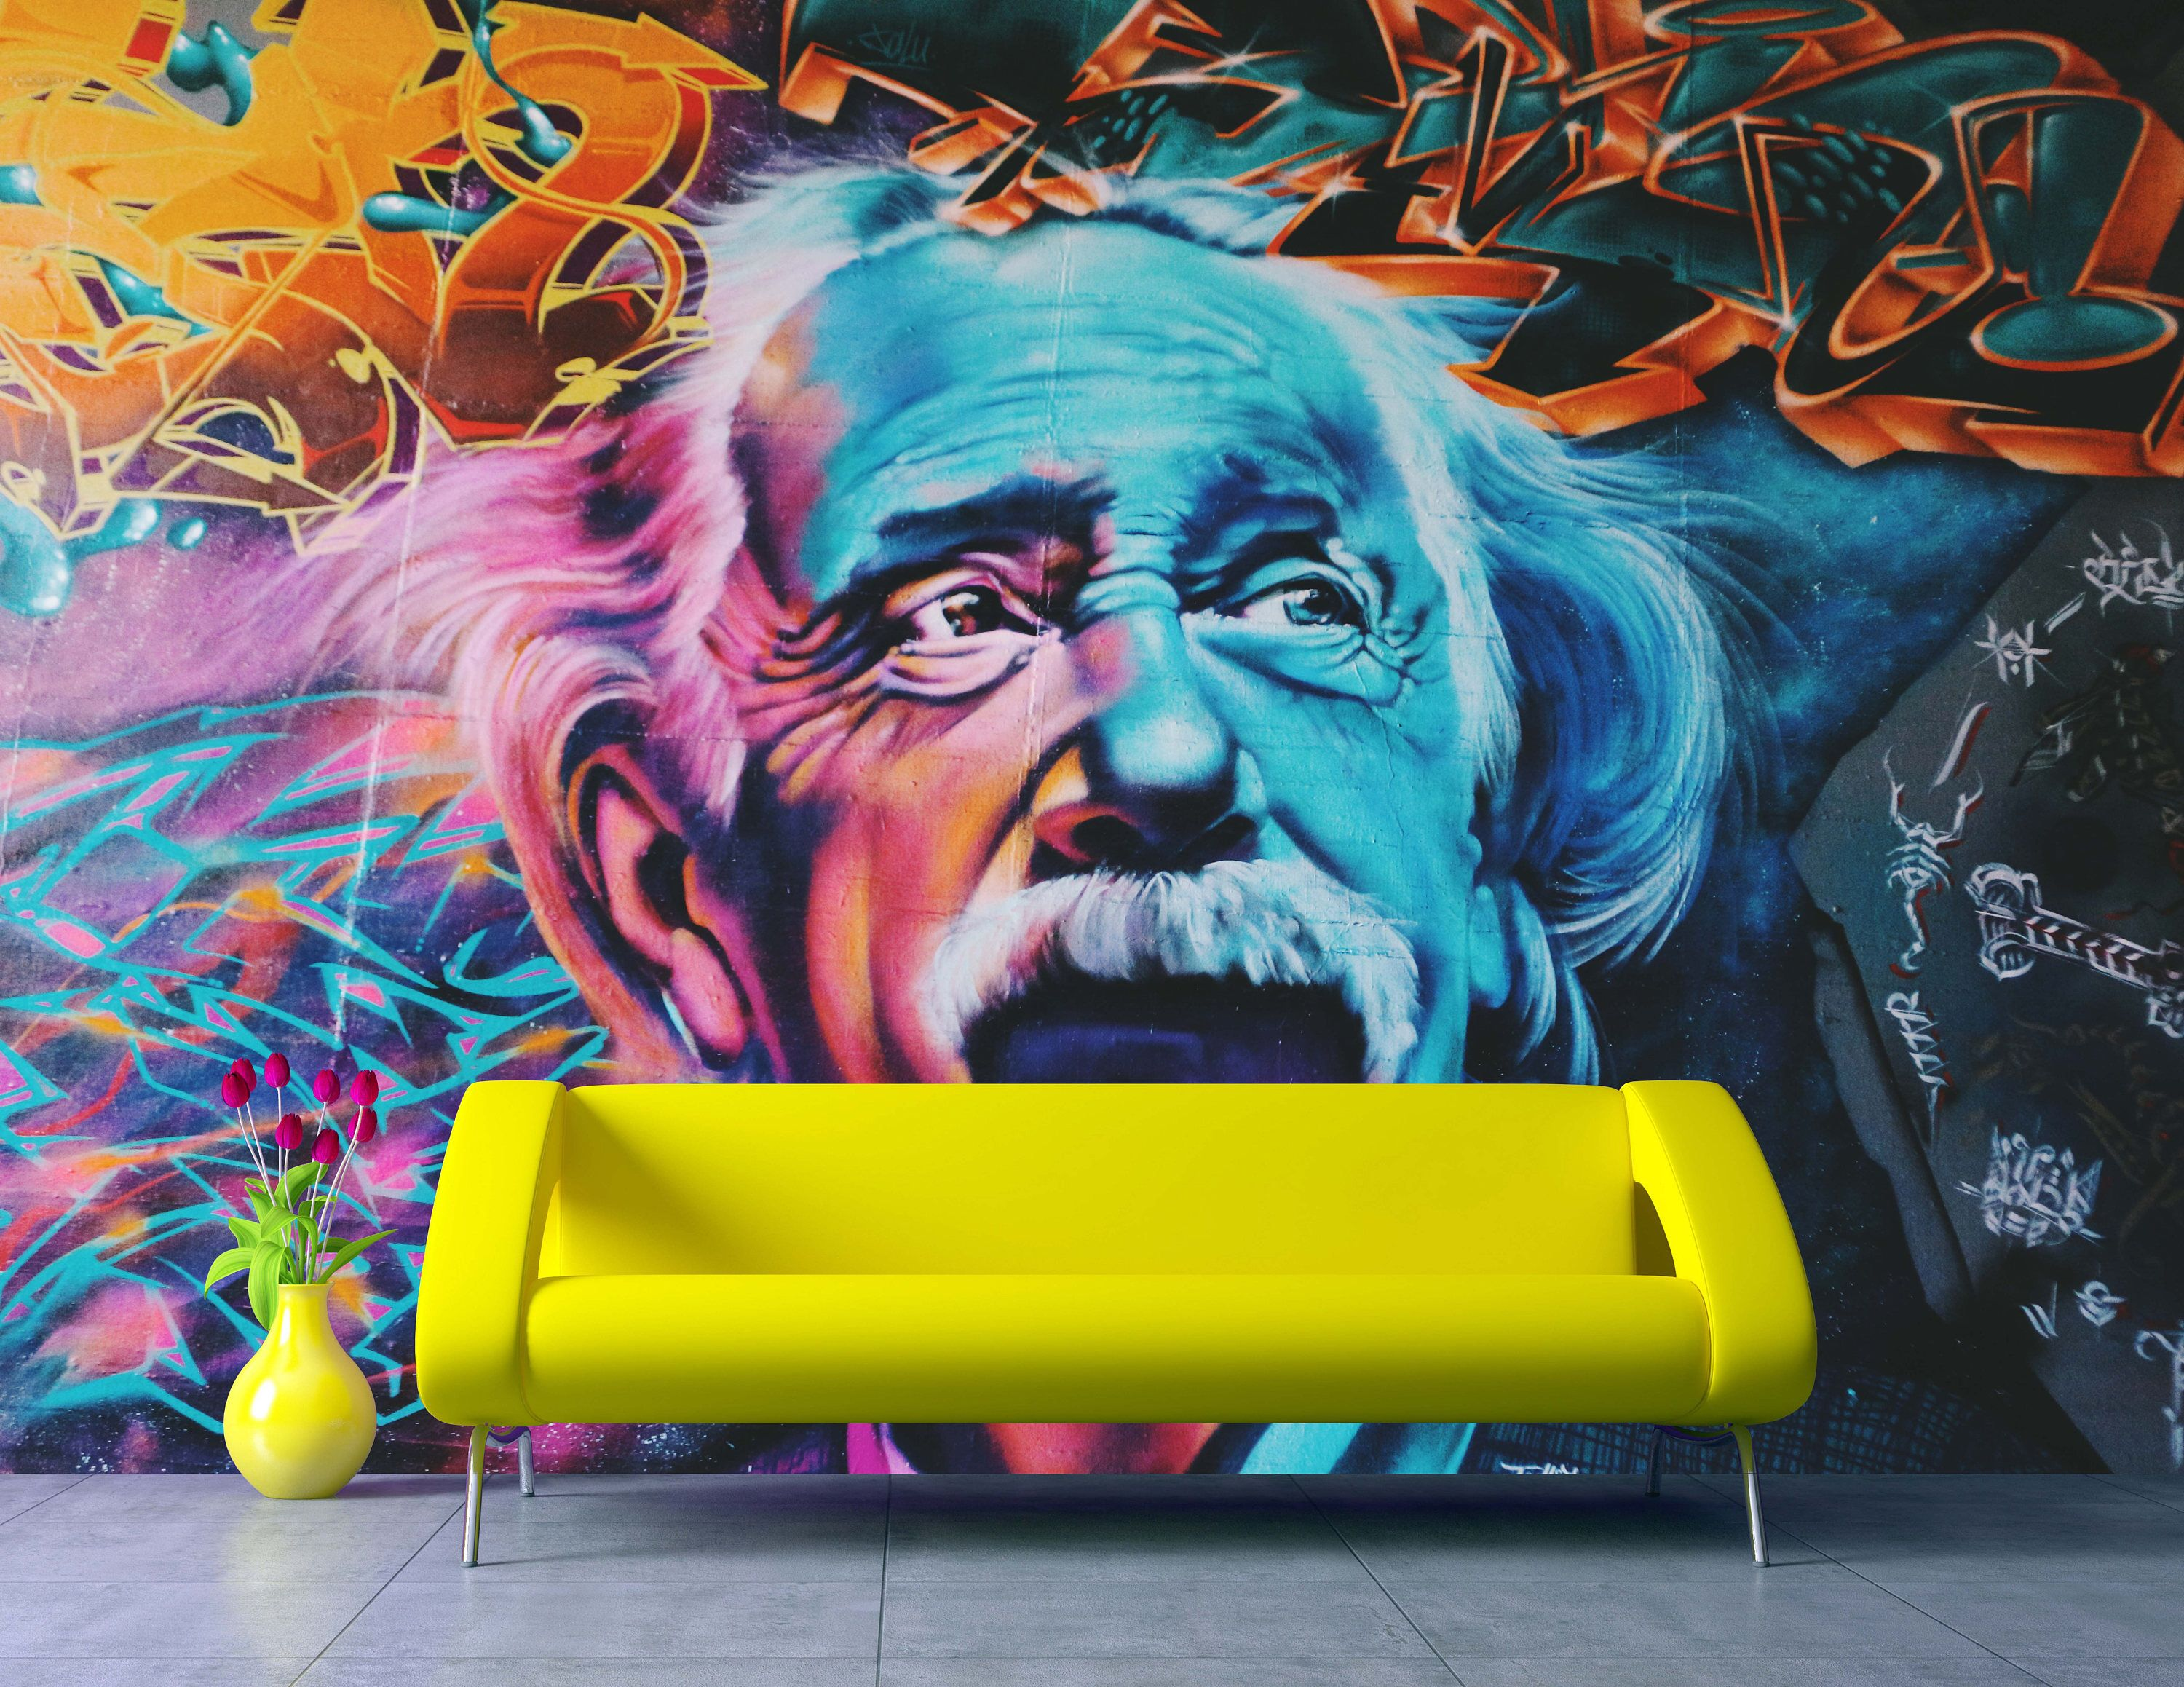 Removable Wallpaper Mural Peel & Stick Einstein Graffiti Wall Self